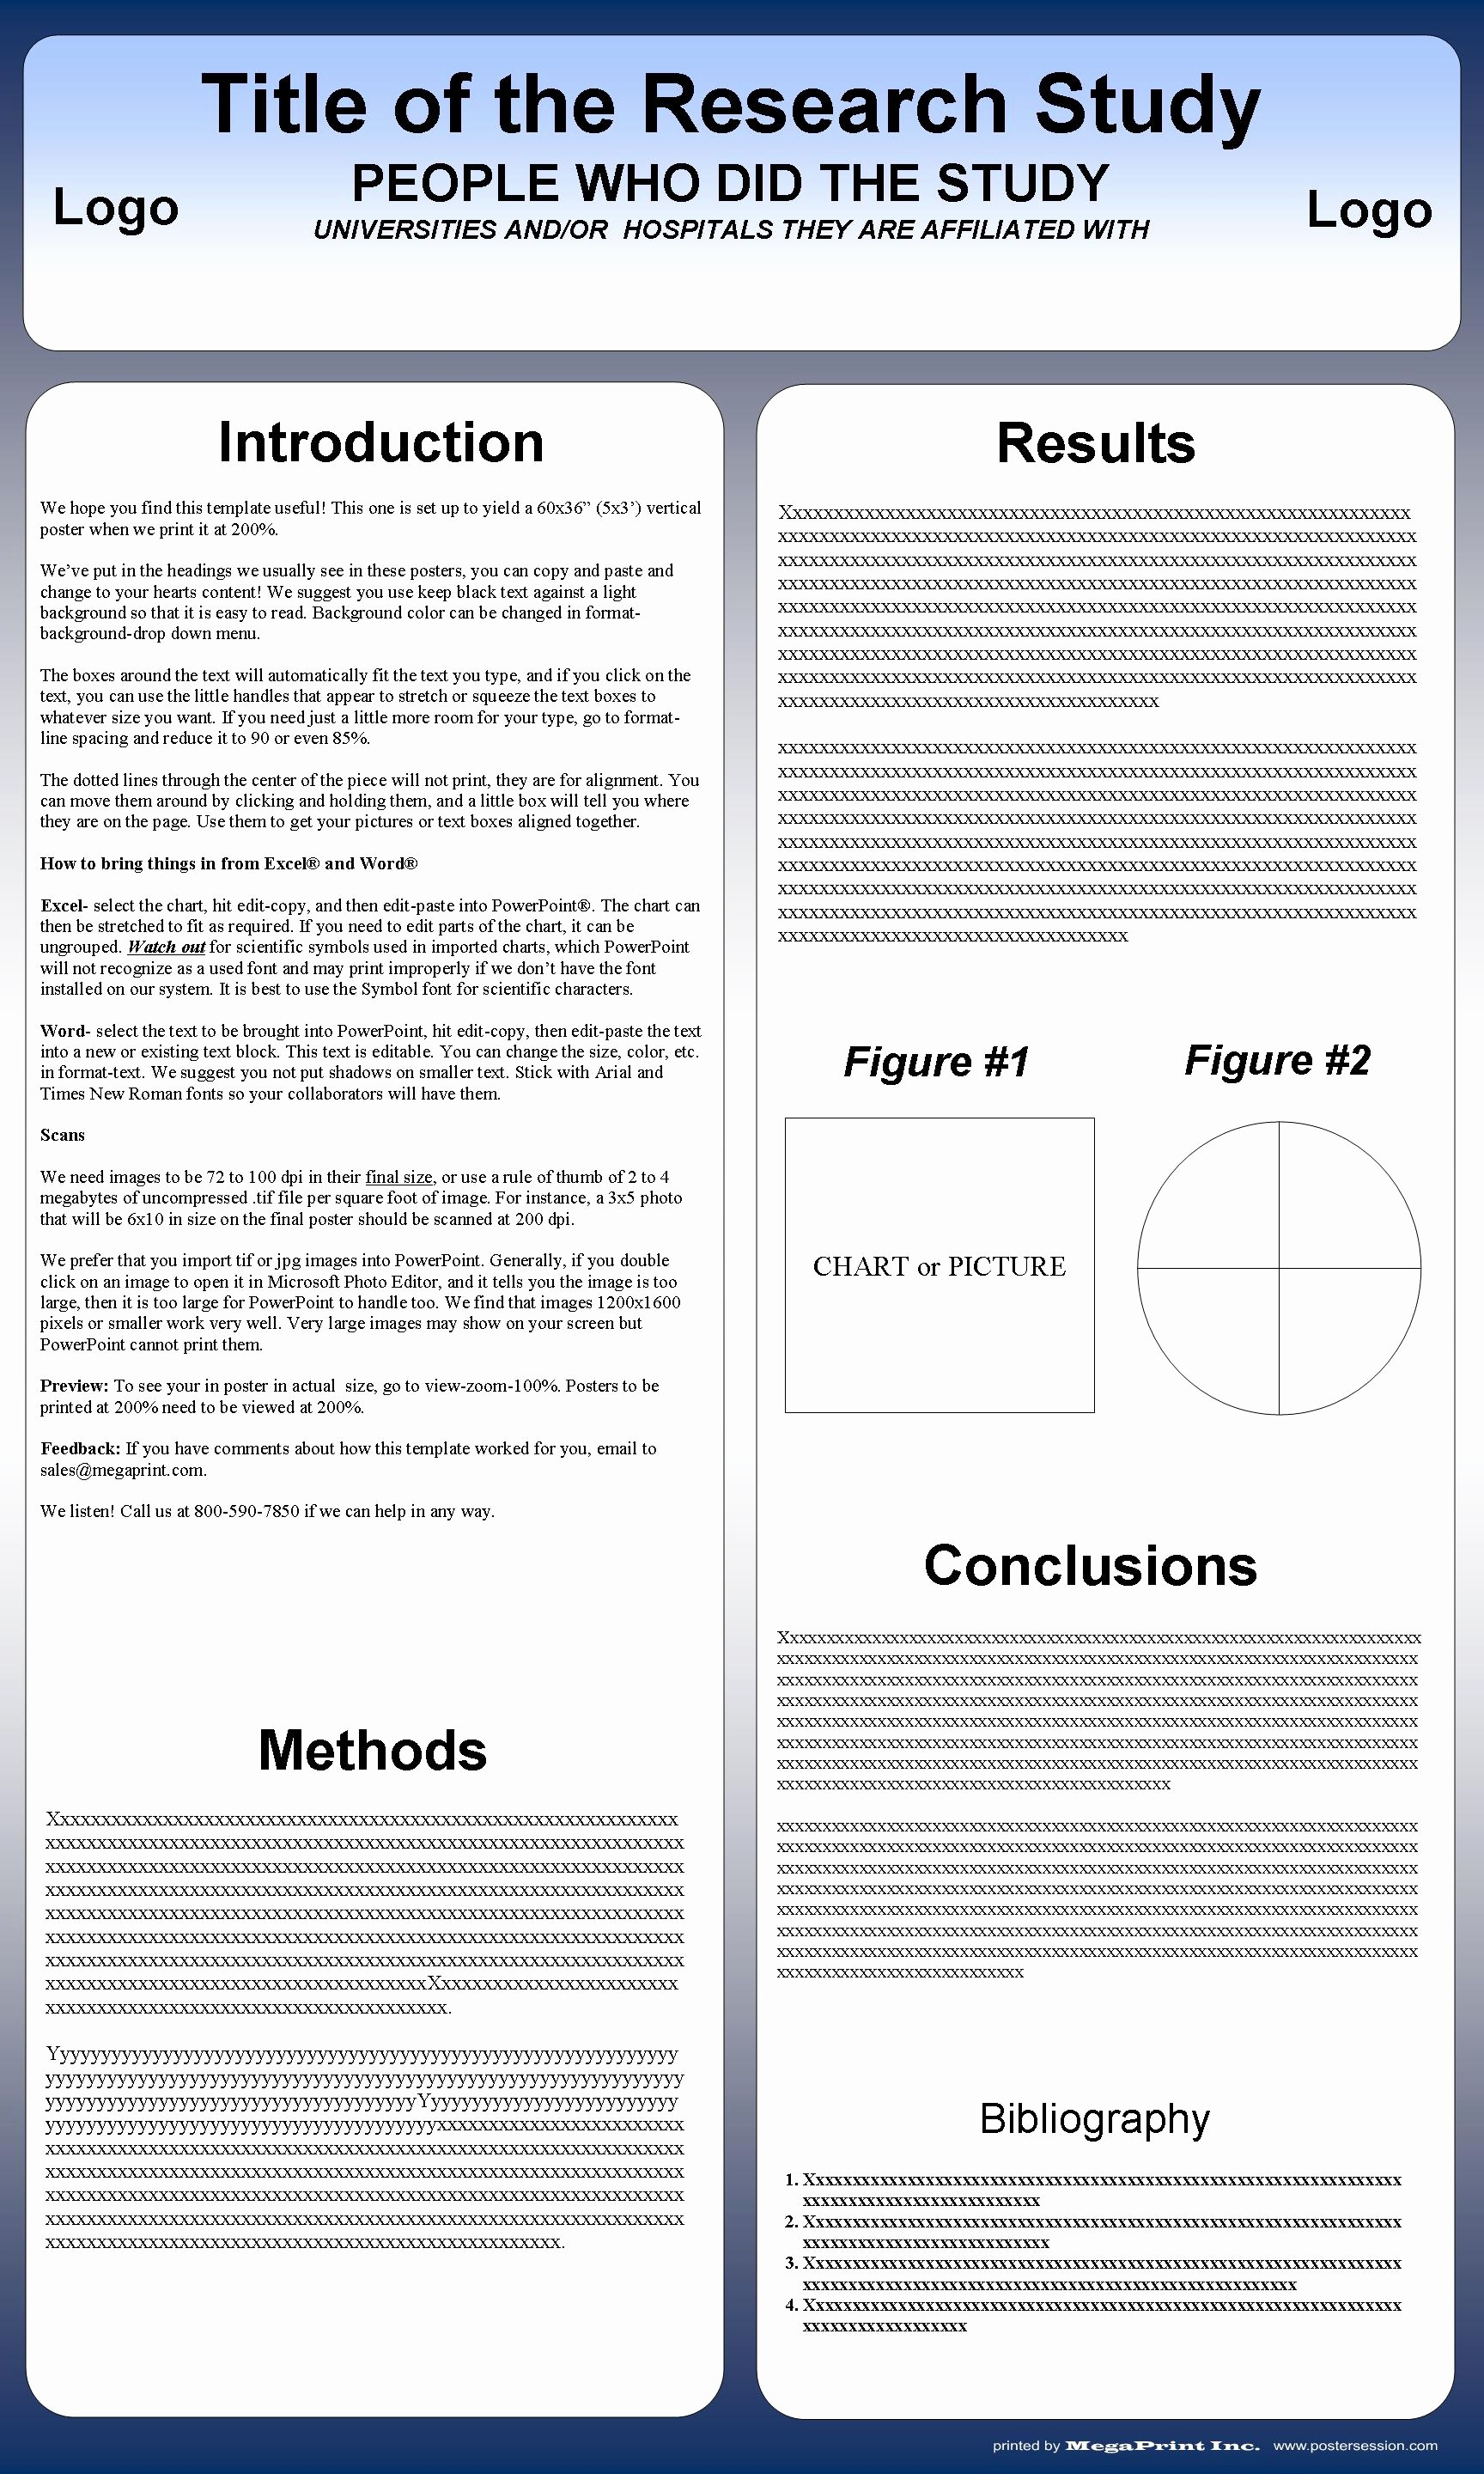 Research Poster Template for Powerpoint Unique Poster Templates You Can Change them